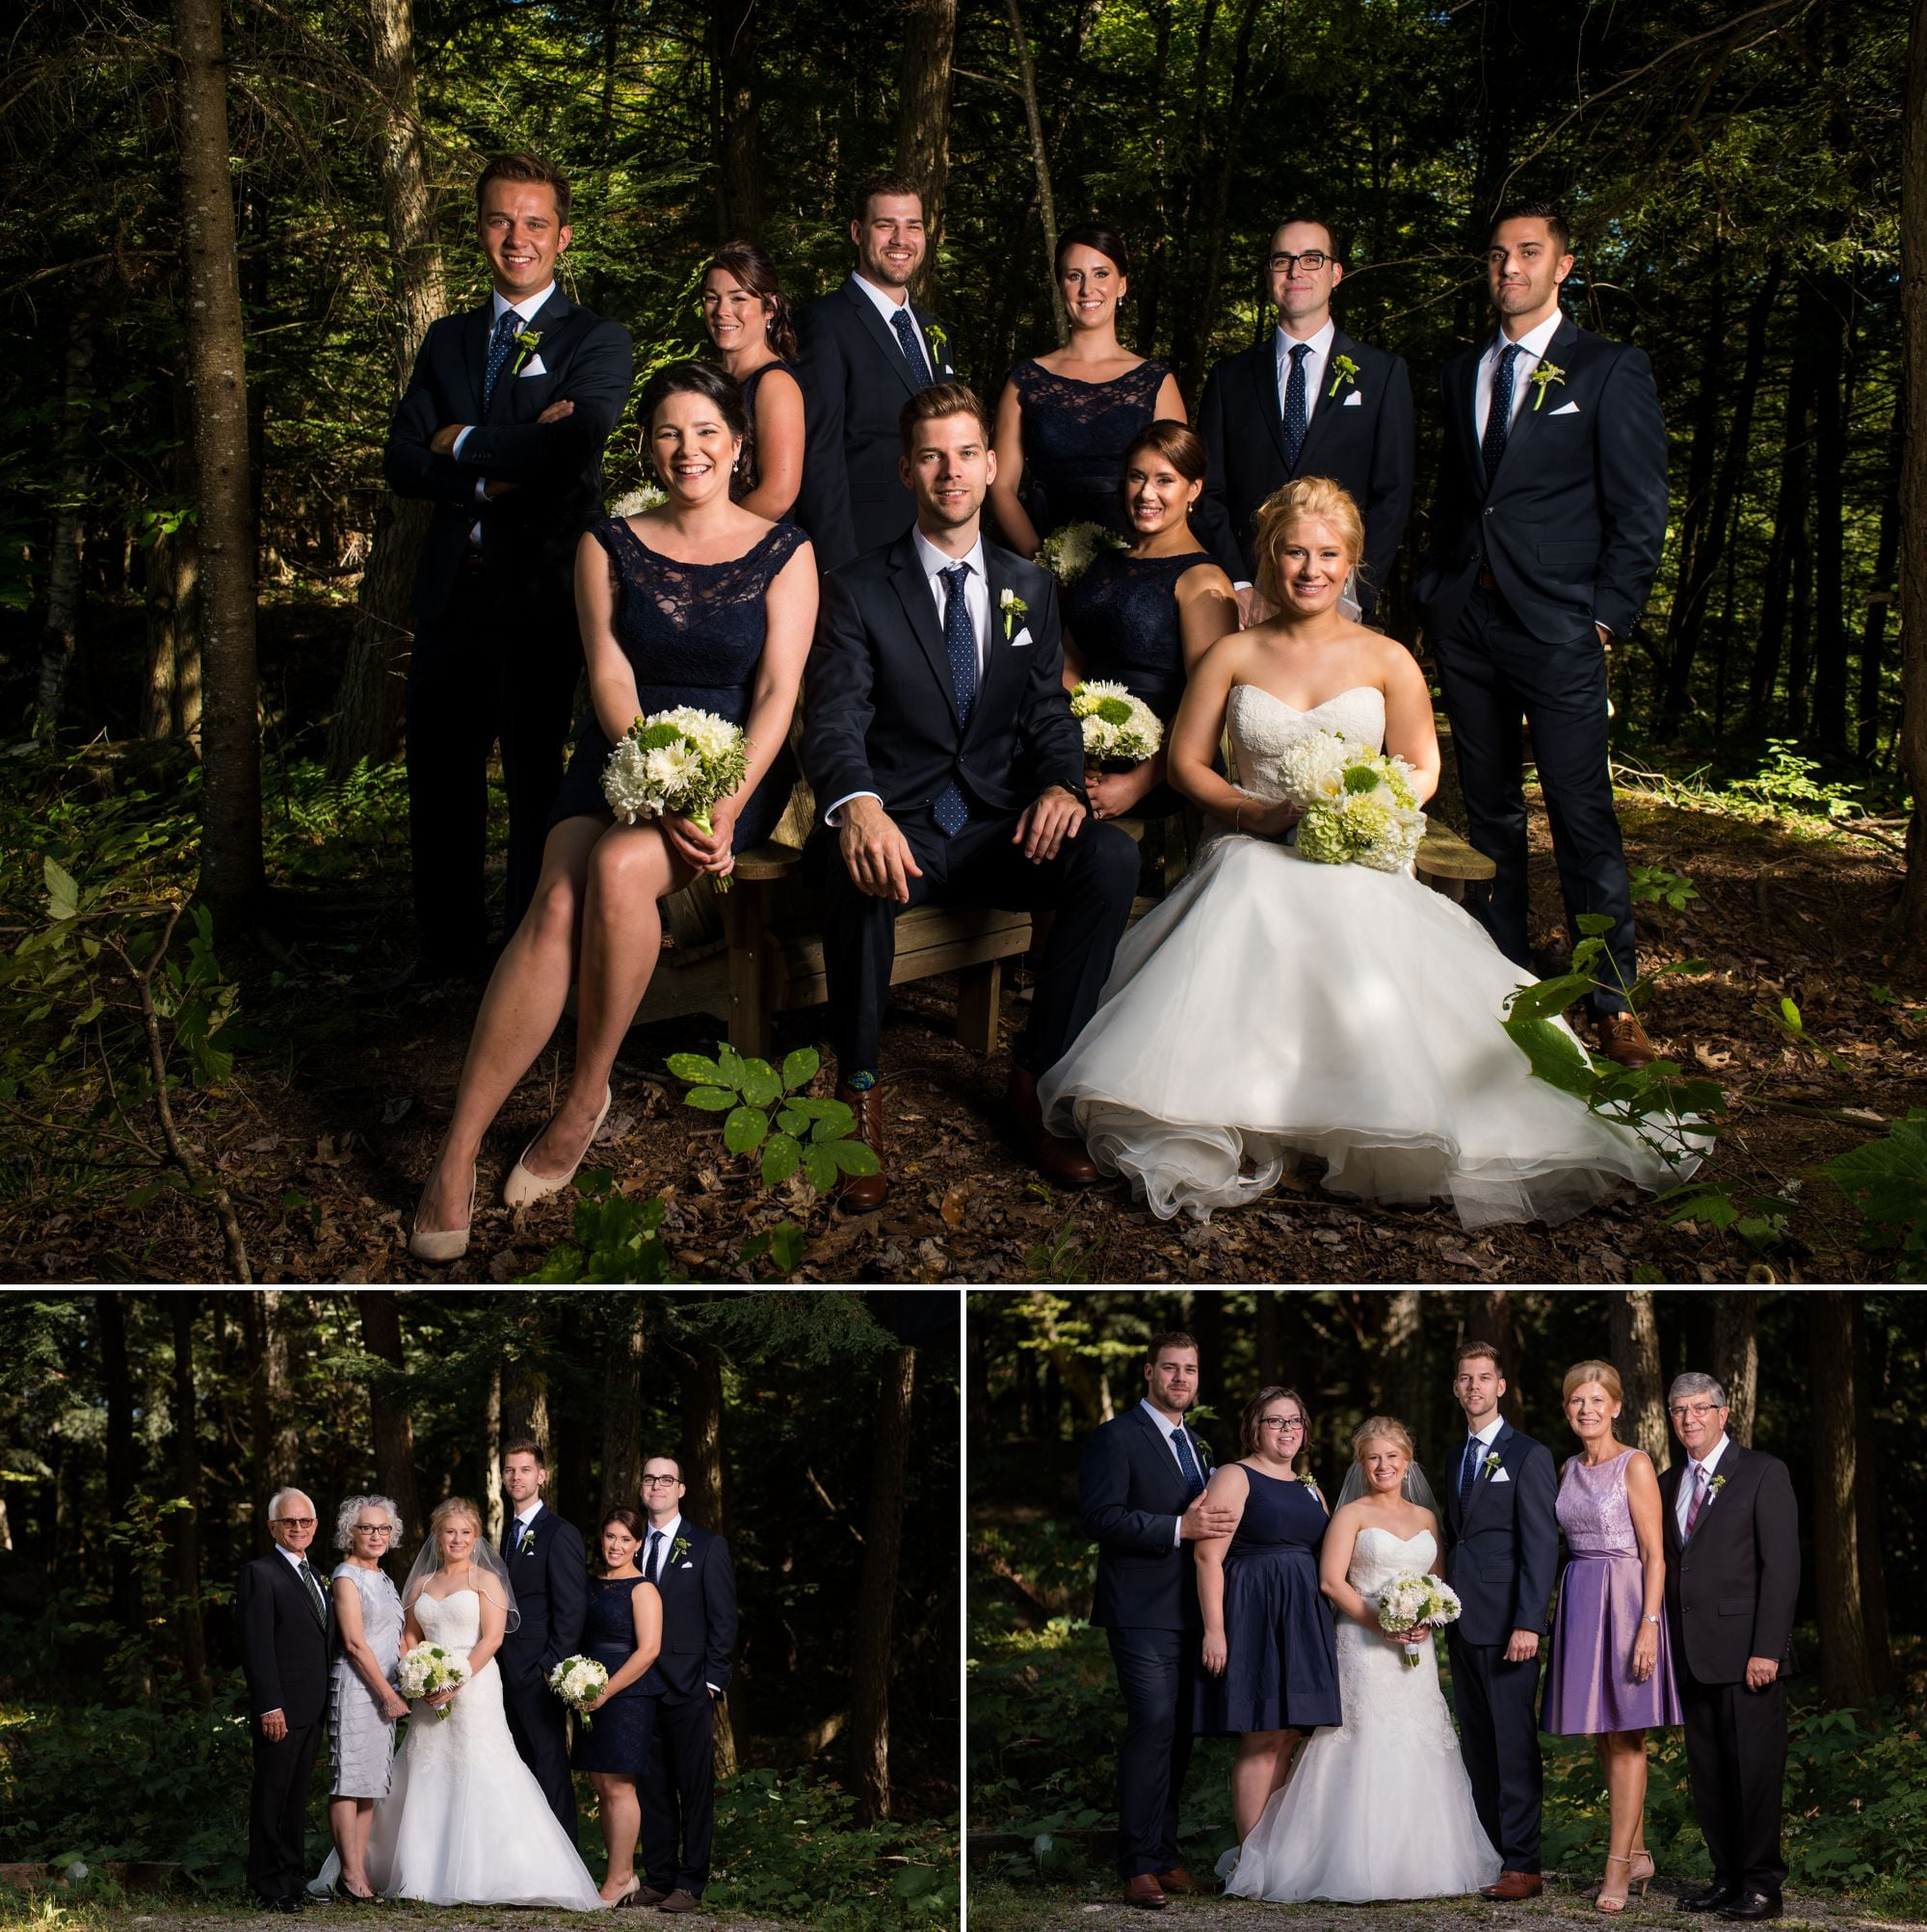 family portraits at a wedding